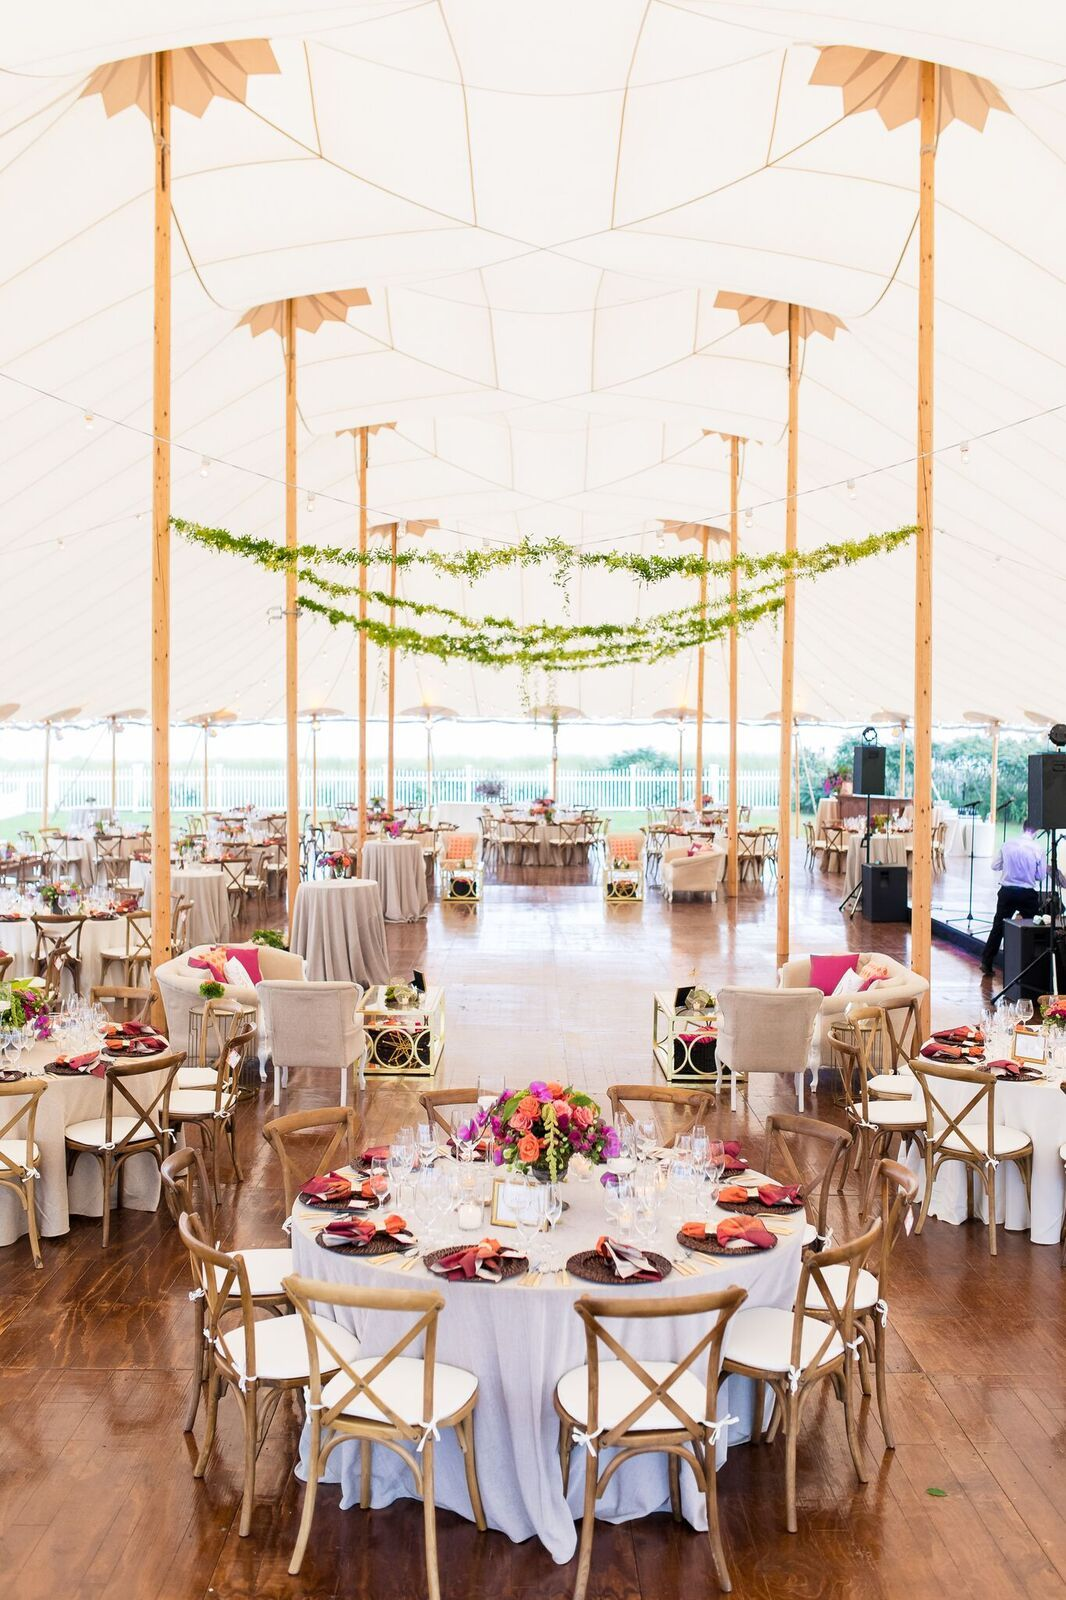 How To Make Your Outdoor Wedding Perfect Start With